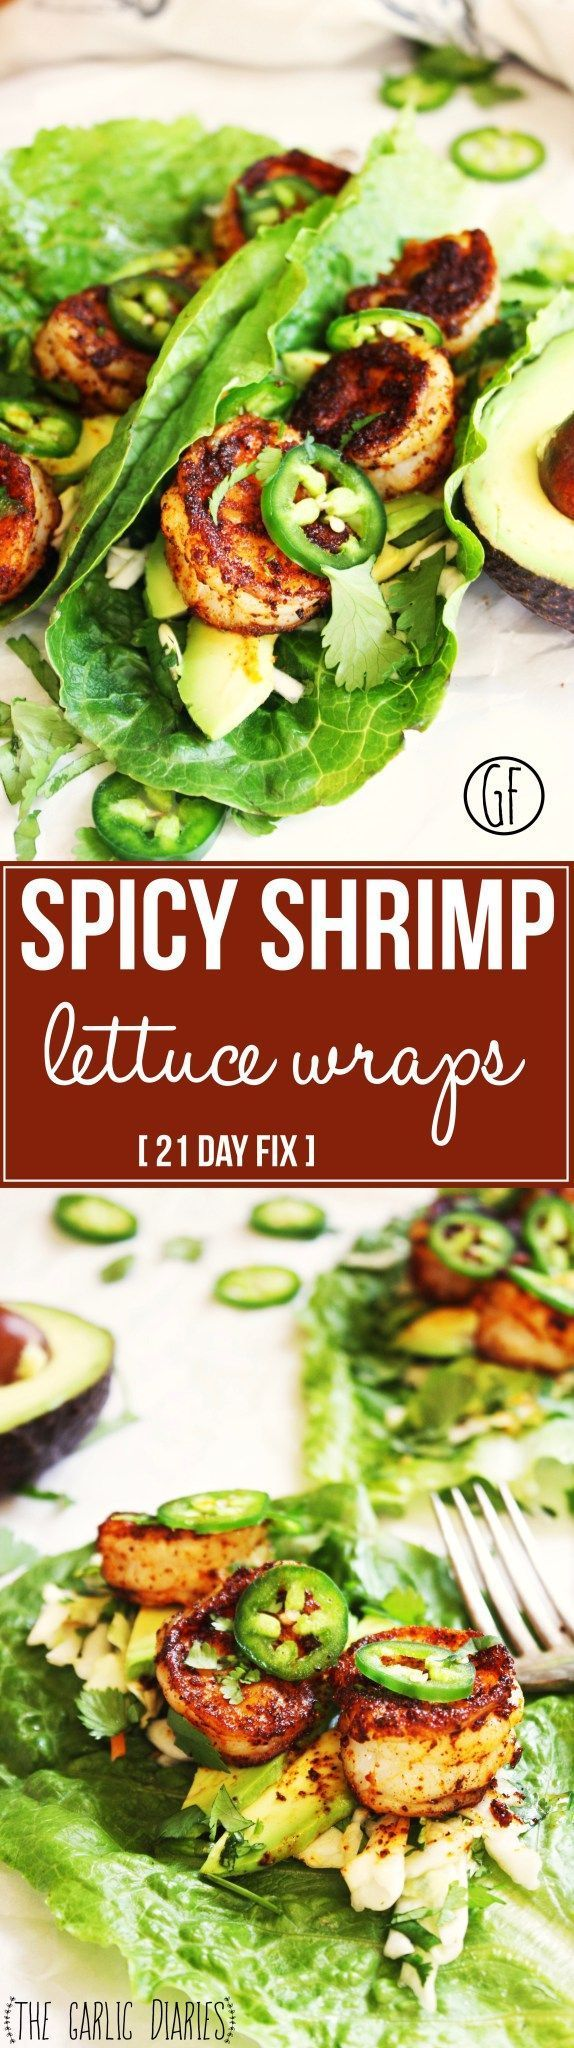 Spicy Shrimp and Avocado Lettuce Wraps [21 Day Fix] - A crispy leaf of romaine lettuce piled high with honey lime slaw, fresh avocado, blackened shrimp, and jalapeños - a flawless combination of flavors and textures! #glutenfree #21dayfix http://TheGarlicDiaries.com